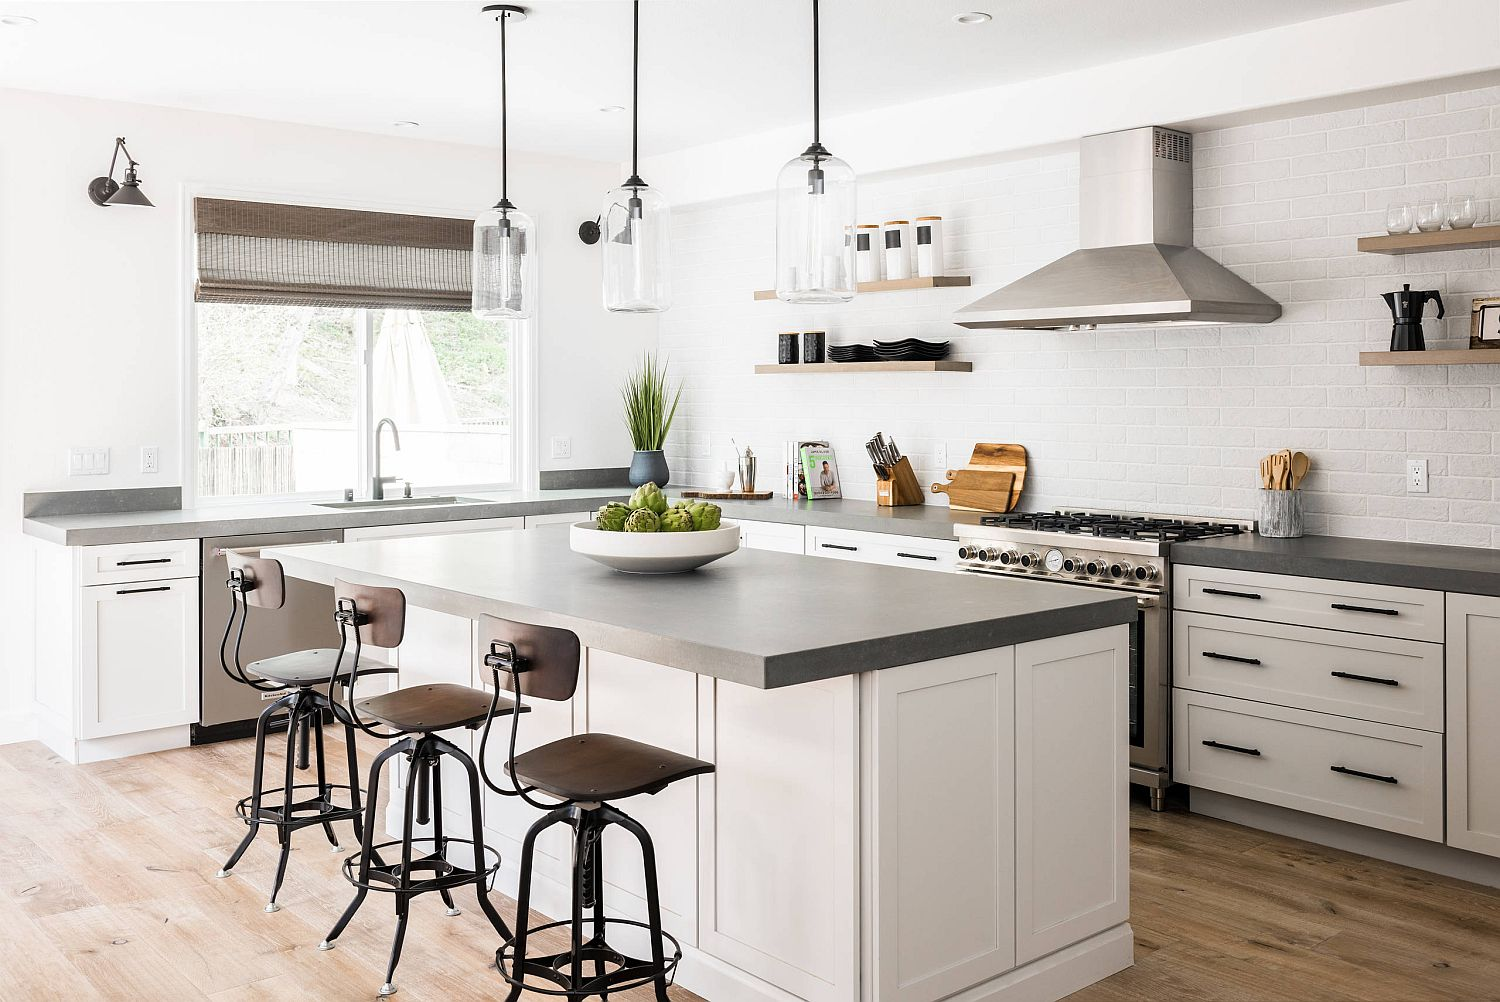 Gorgeous countertops anchor the white kitchen and add visual contrast